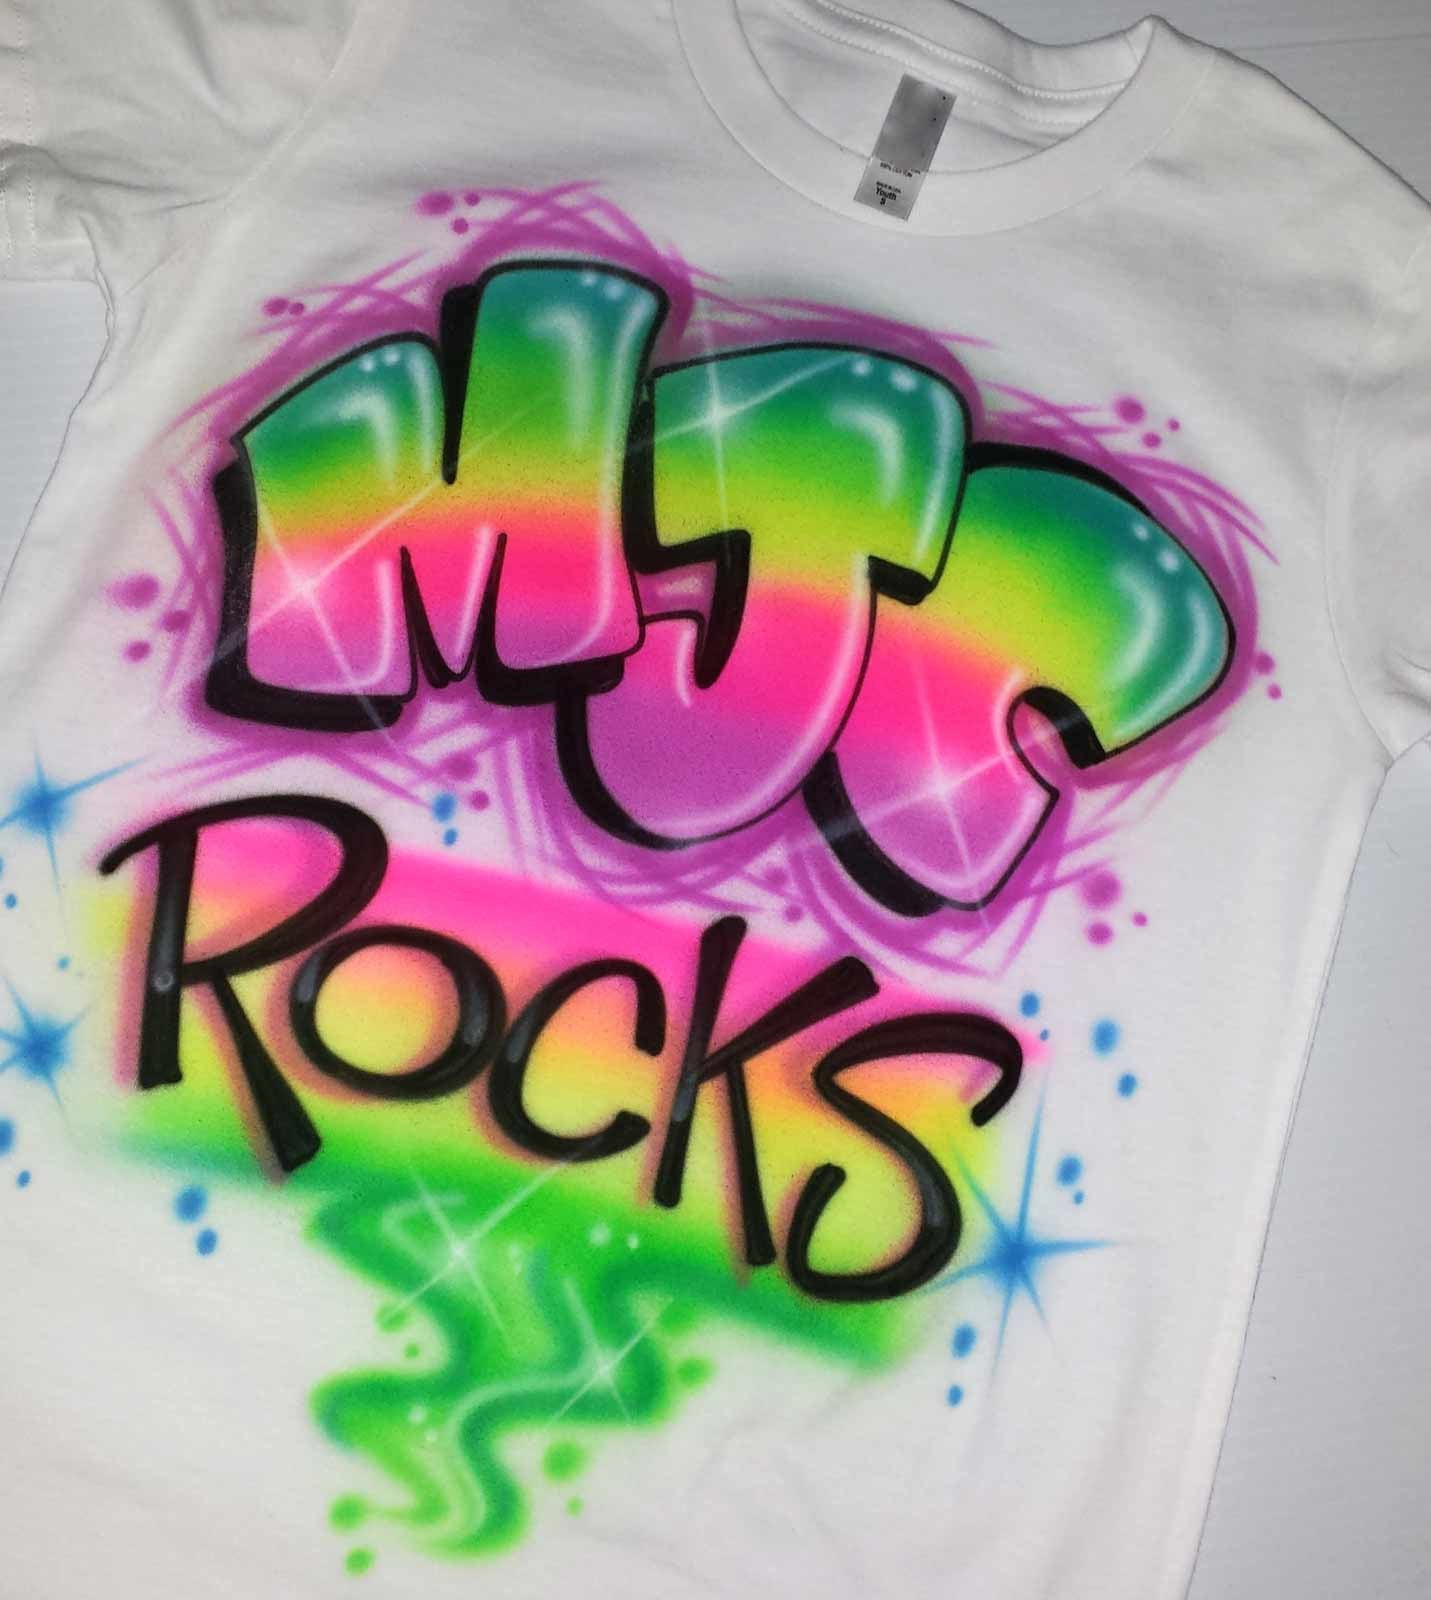 Custom Camp Rocks Graffiti Airbrush Shirt